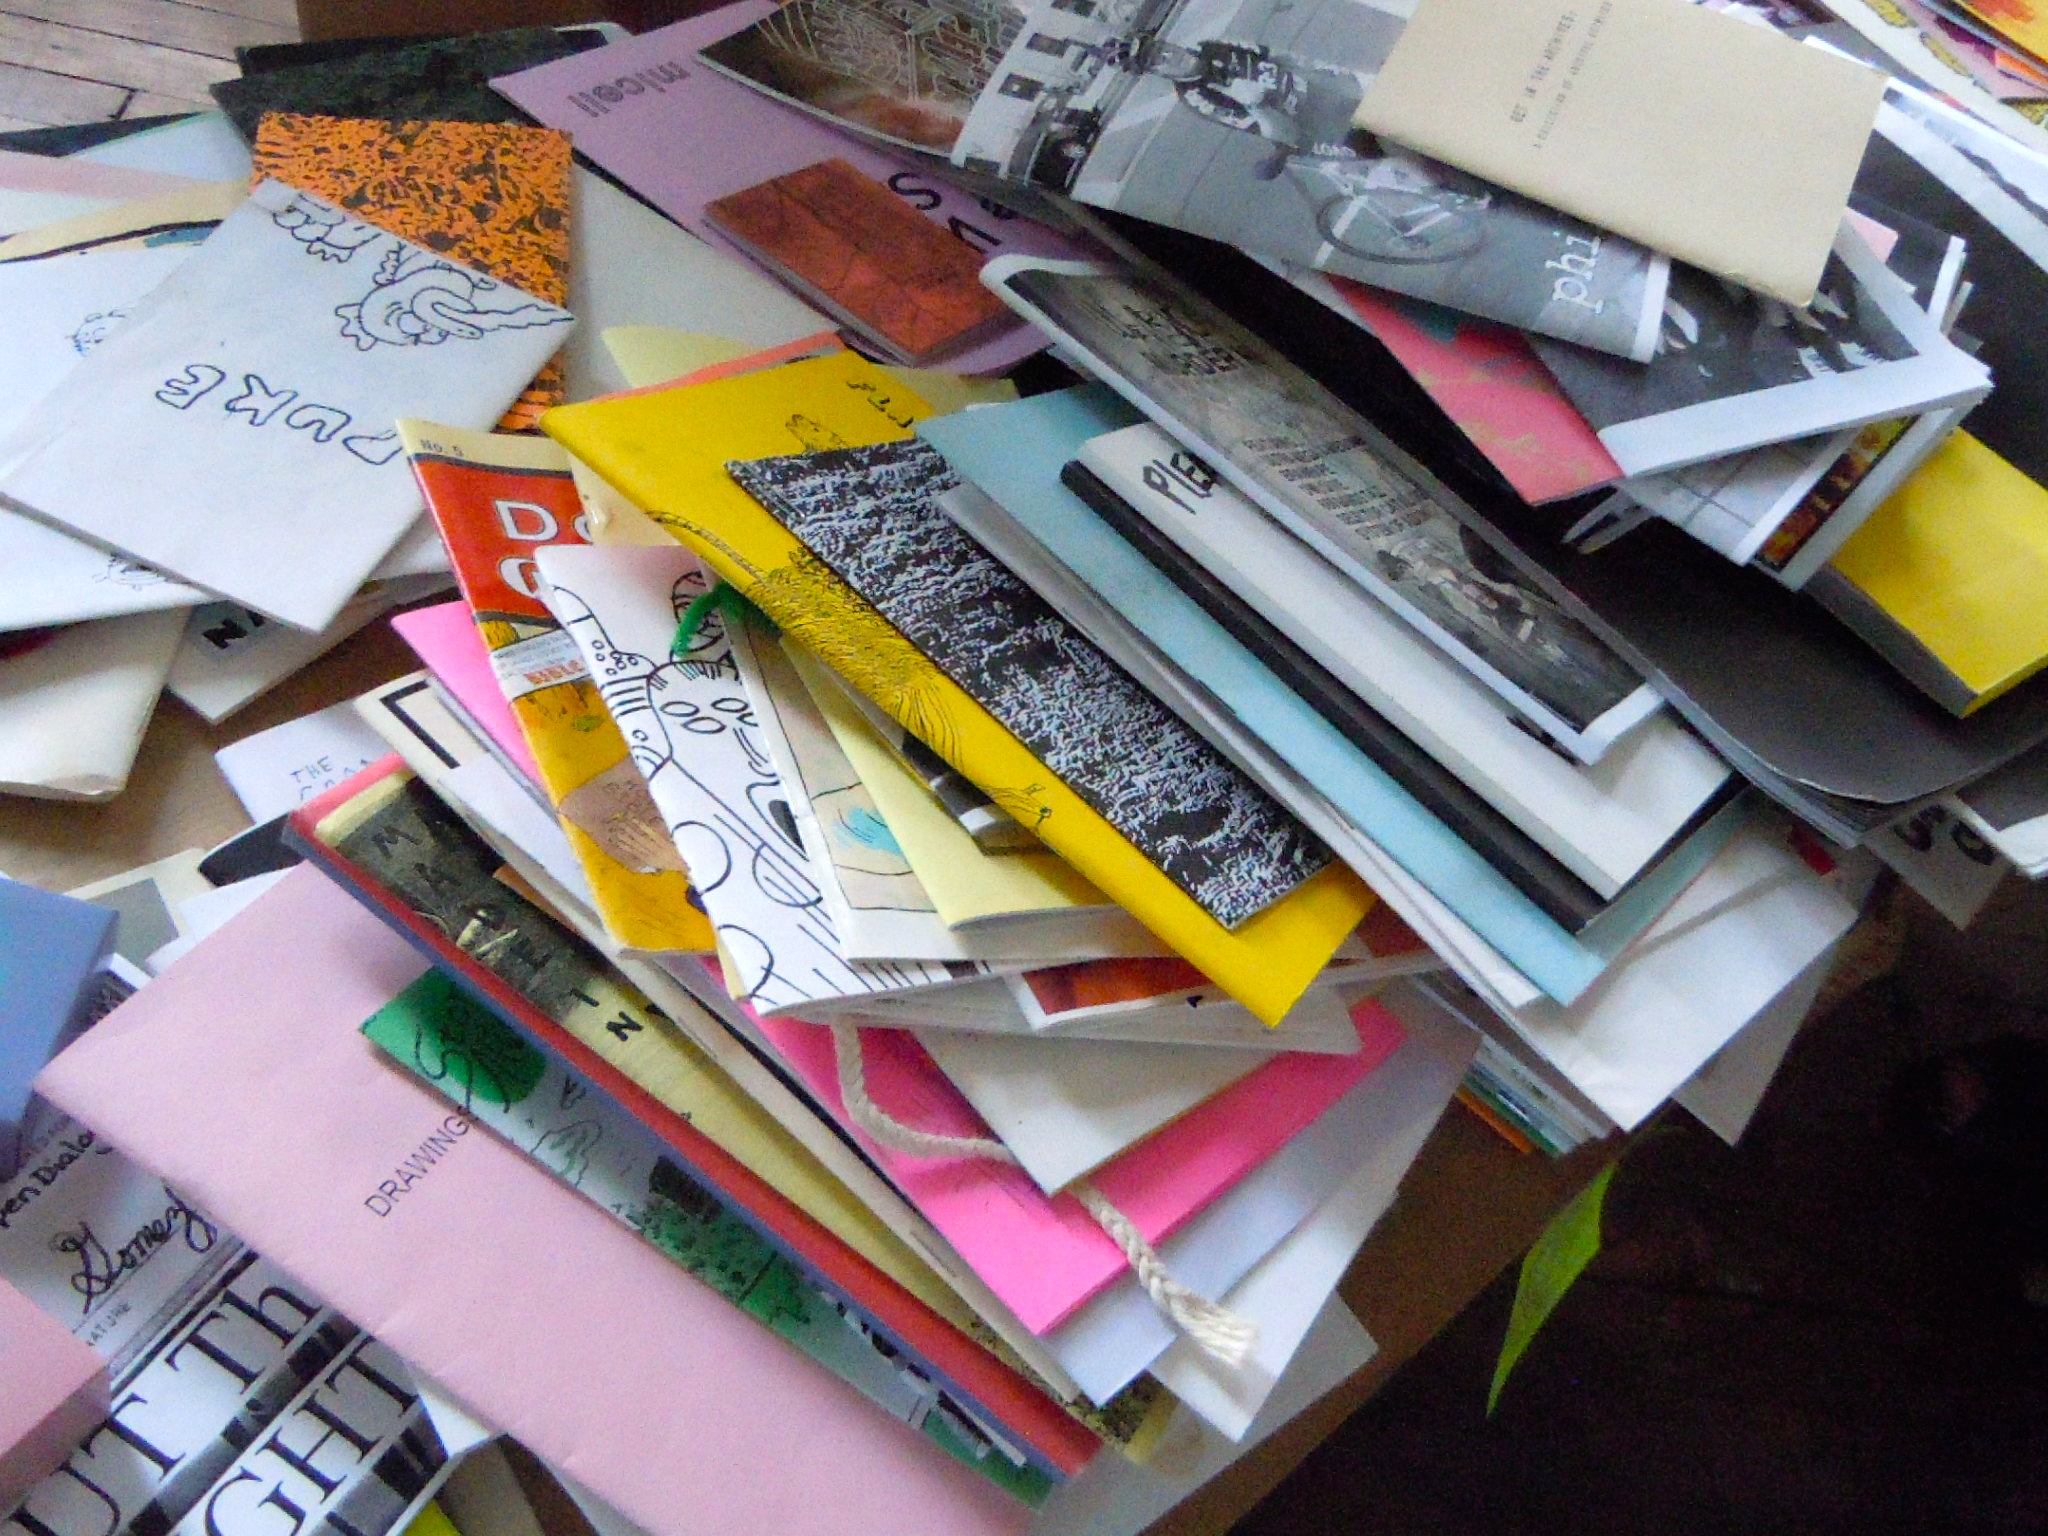 Stacks of zines.